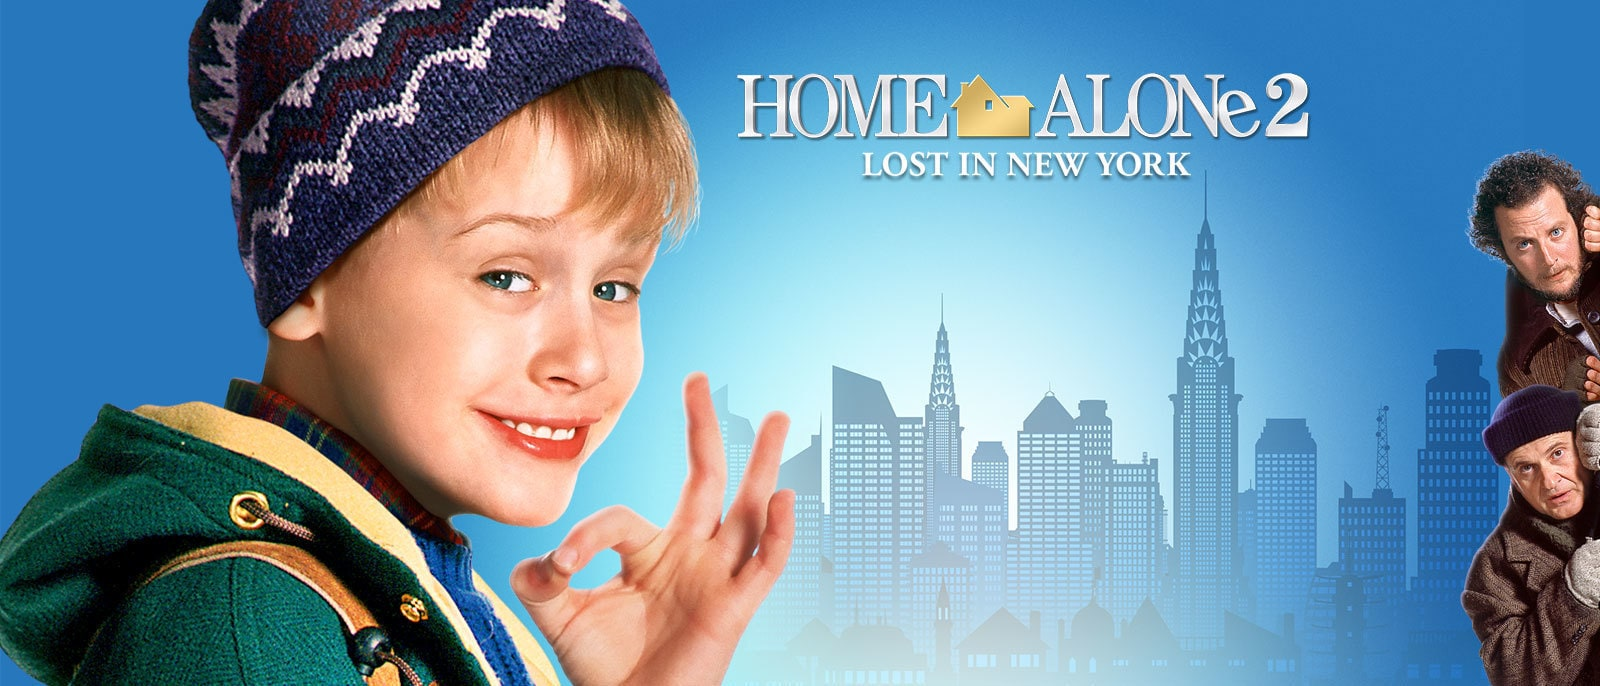 Home Alone 2: Lost in New York Hero